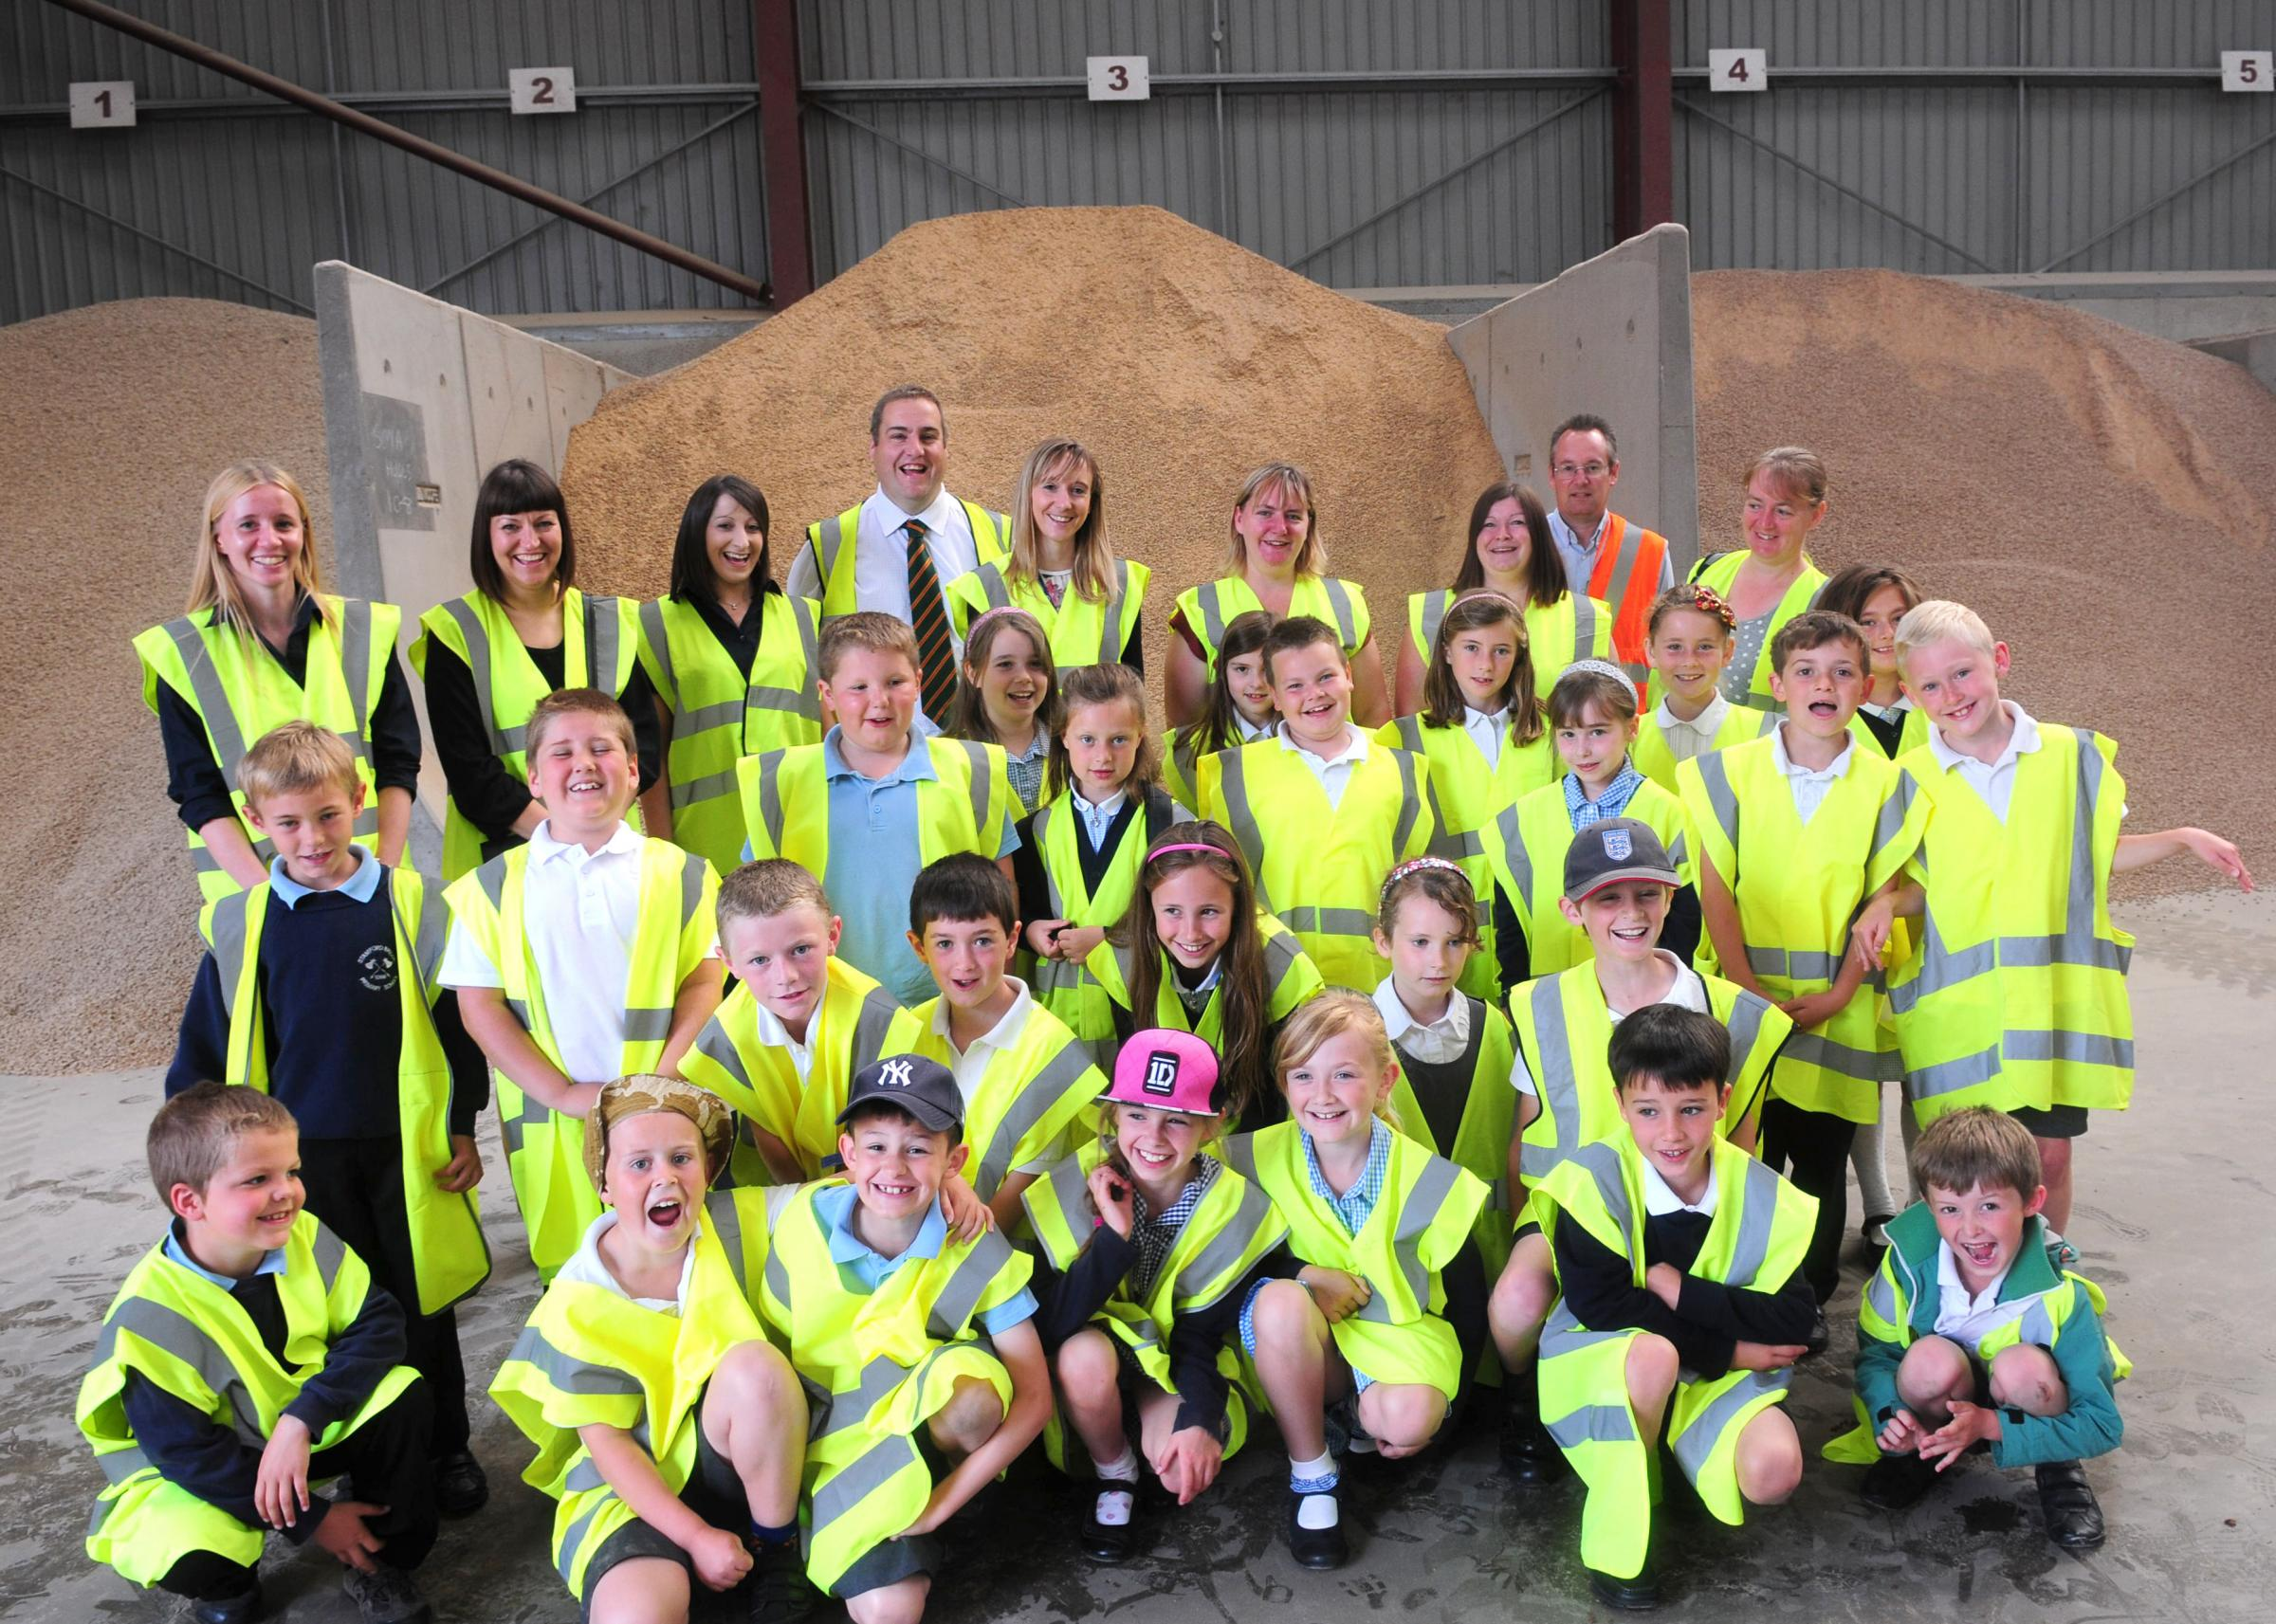 Pupils from Stamford Bridge Junior School's year 3 enjoy their trip to Thompsons of York